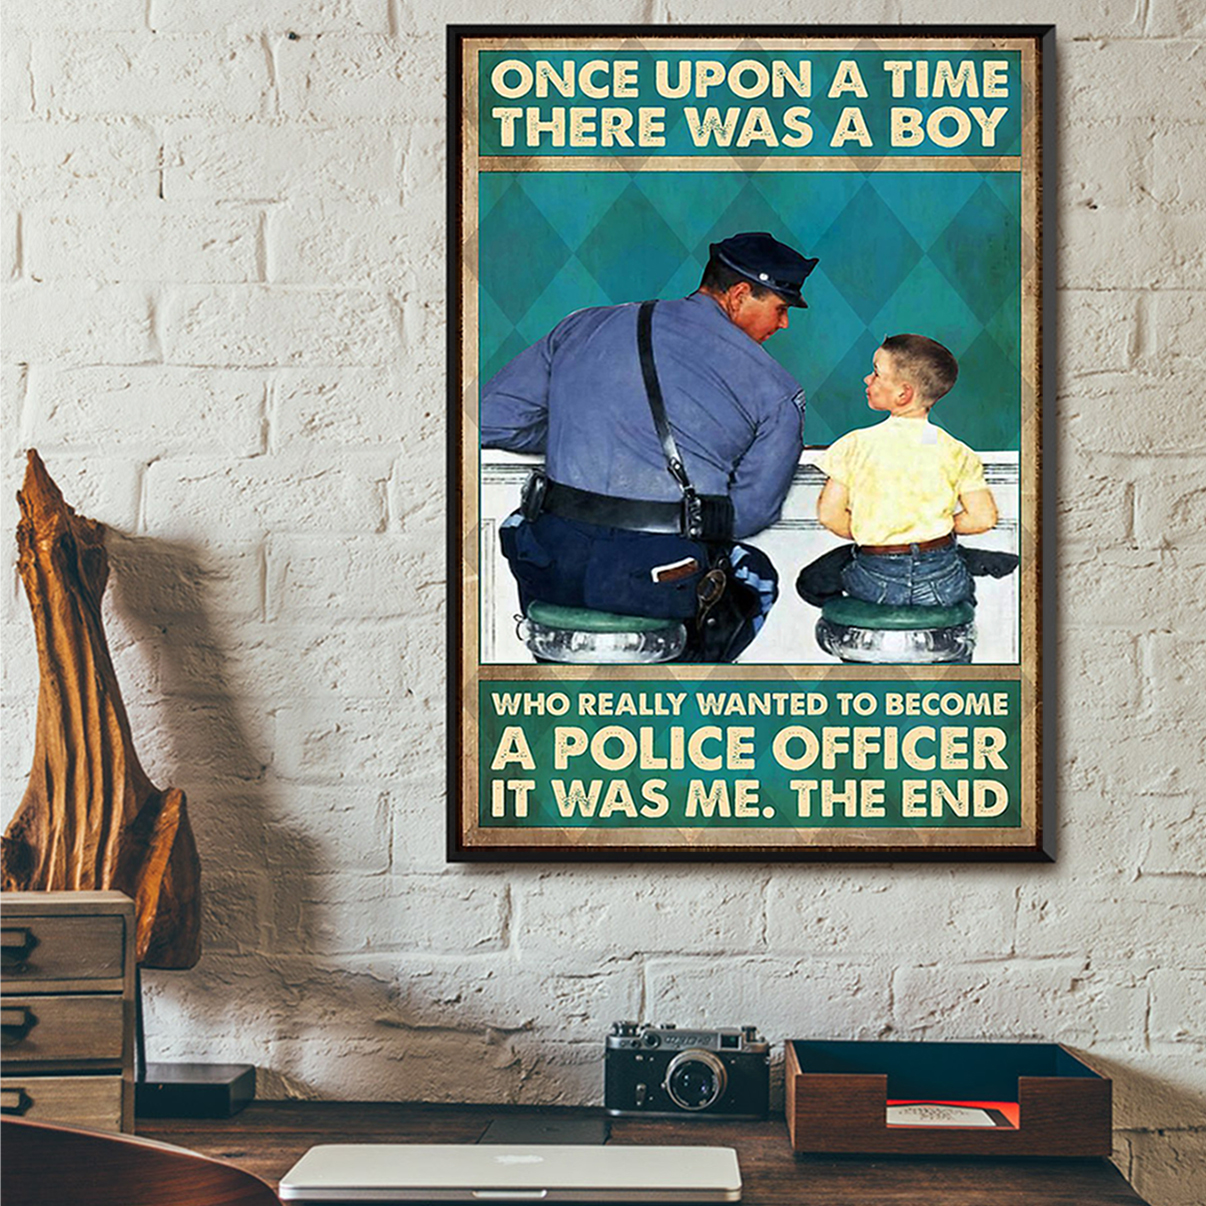 Once upon a time there was a boy who really wanted to become a police officer poster A3